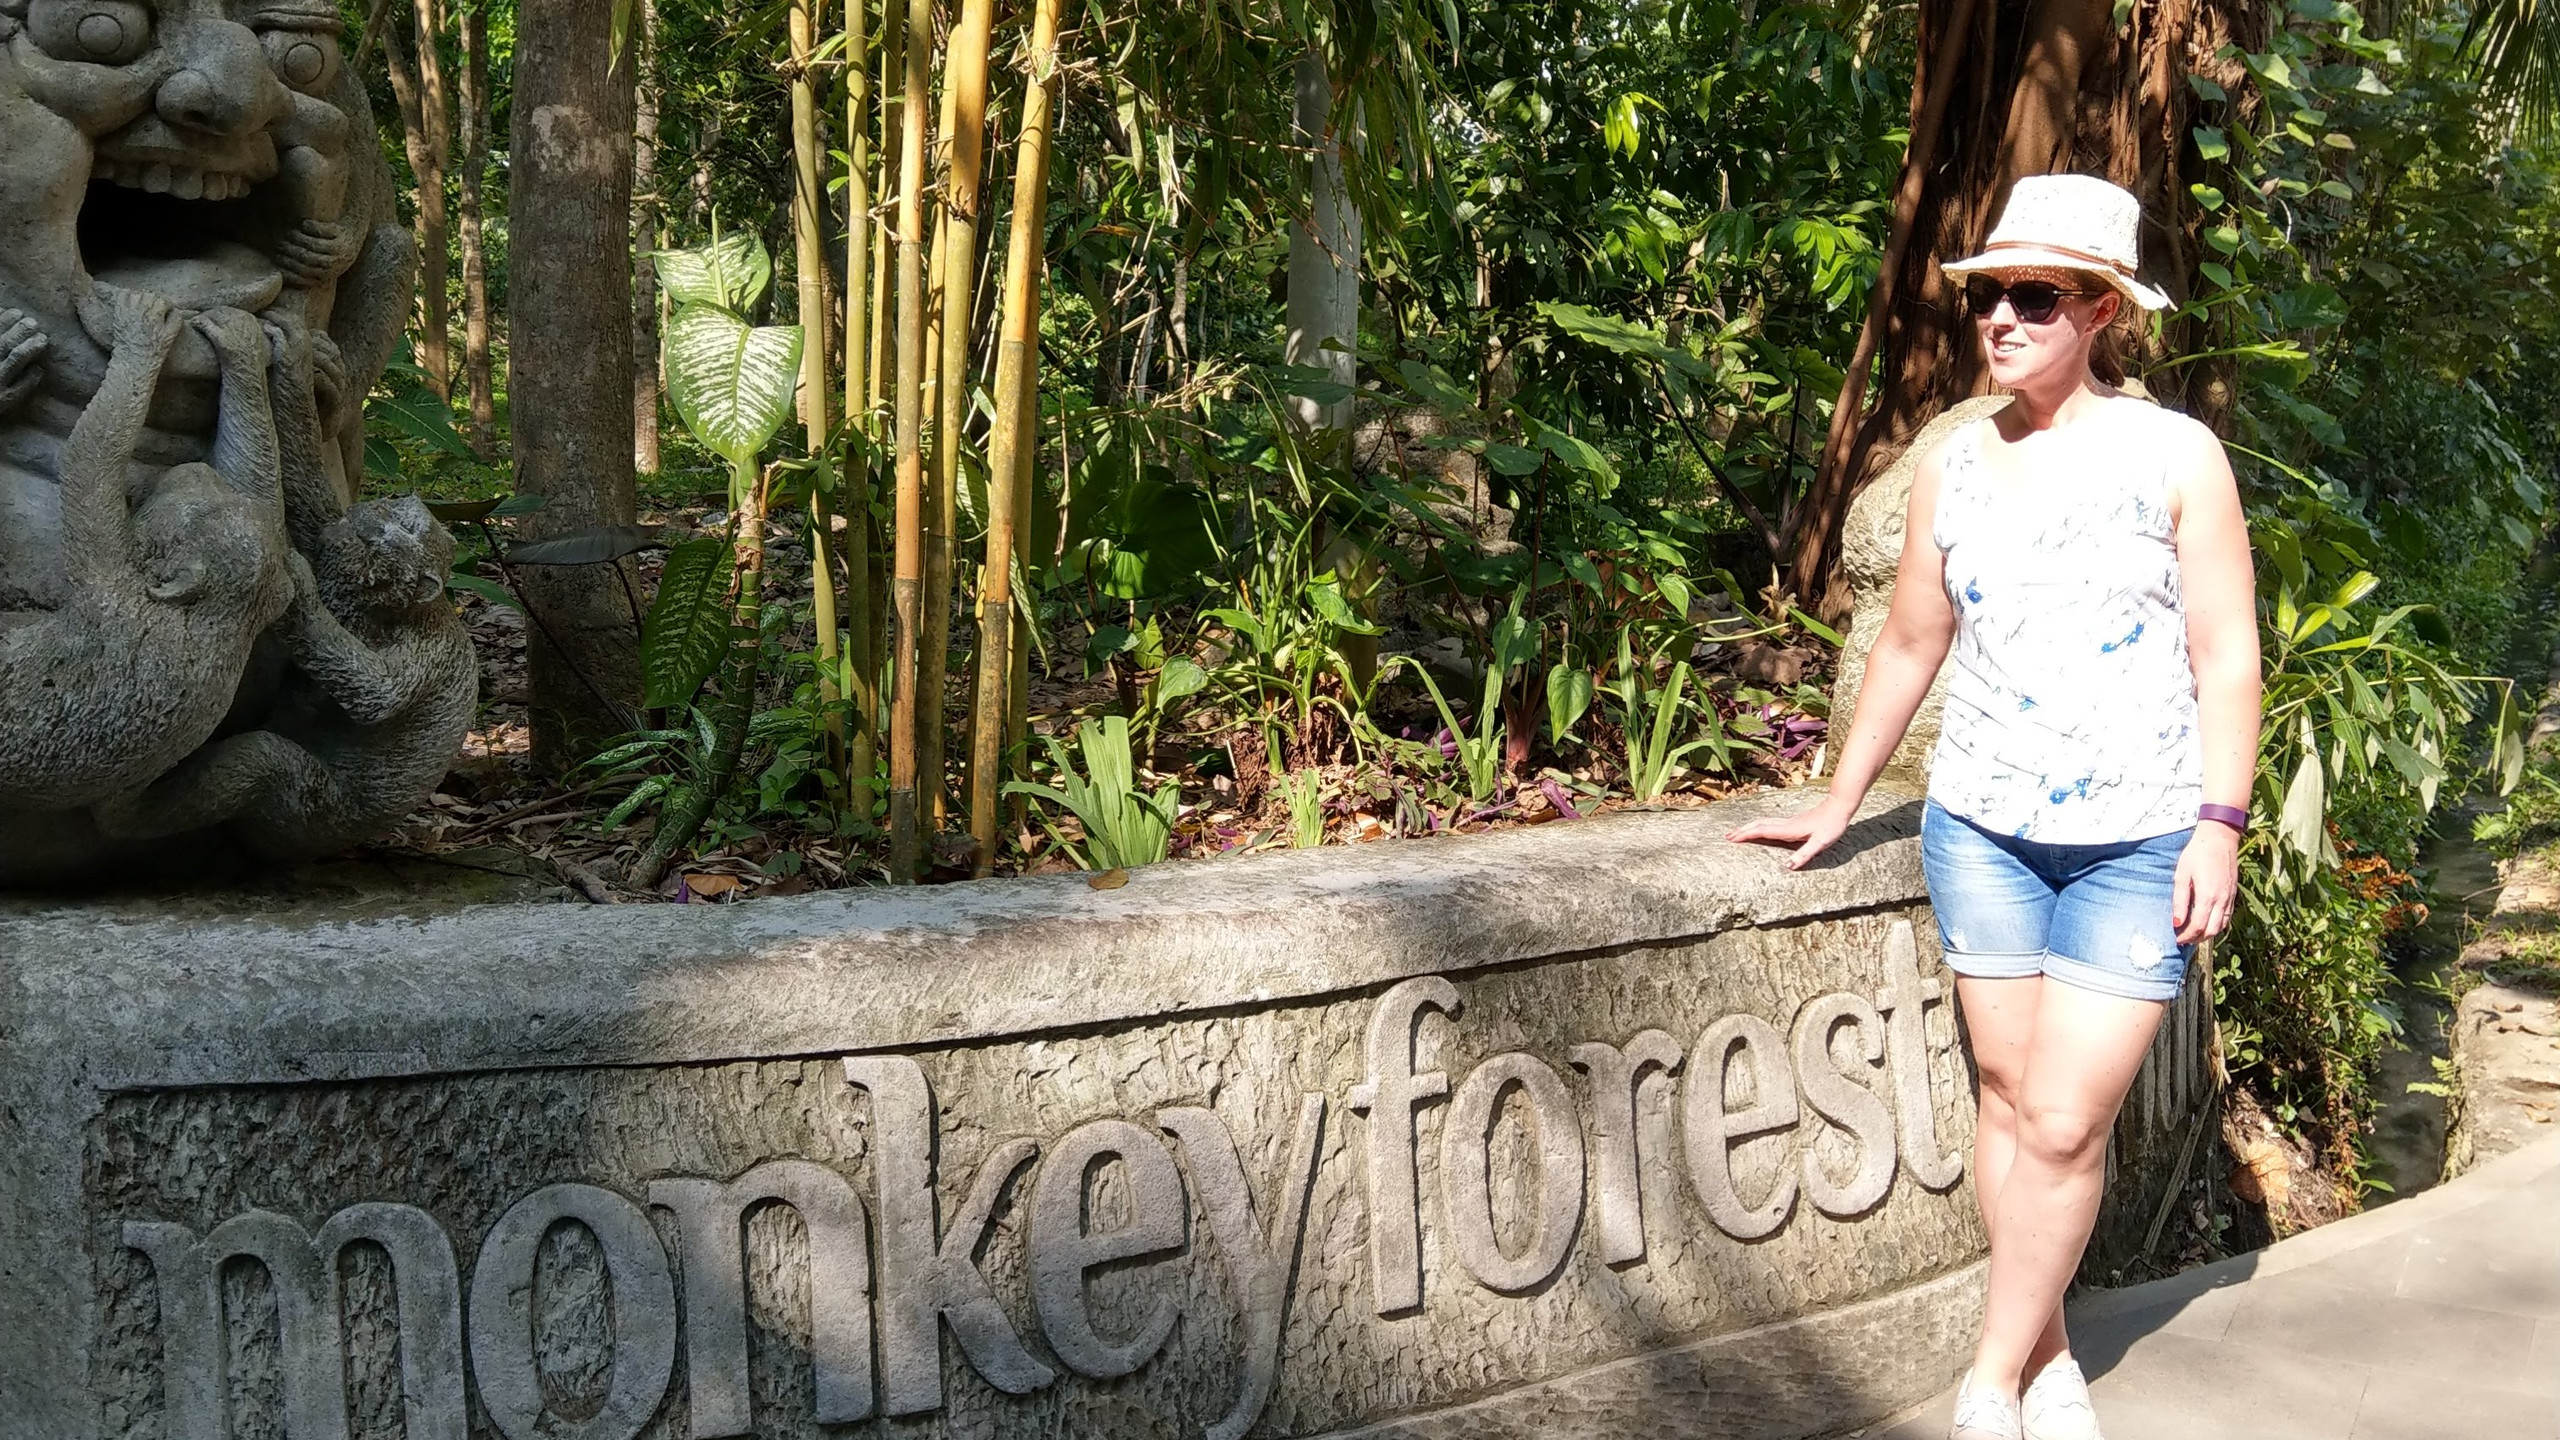 Elizah at the Monkey Forest